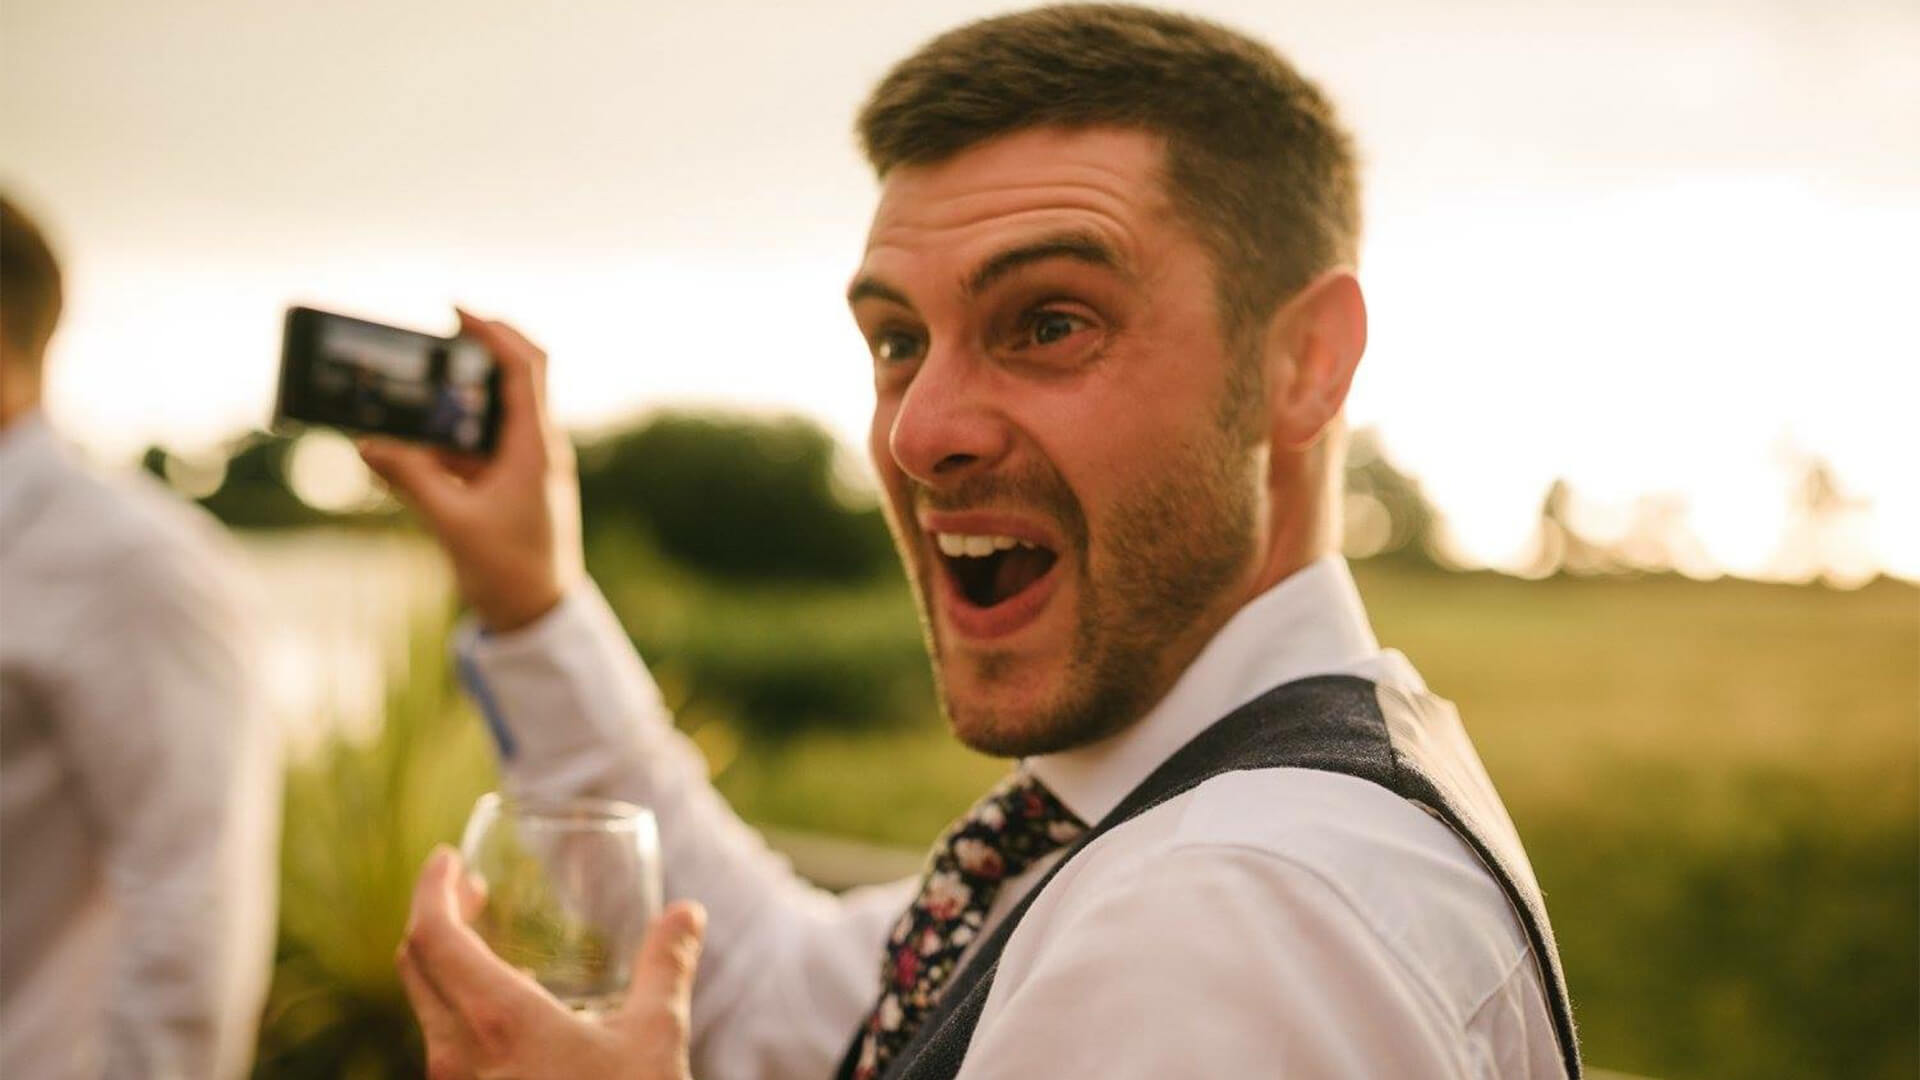 manchester wedding magician aaron calvert makes mans jaw drop to the floor when performing magic